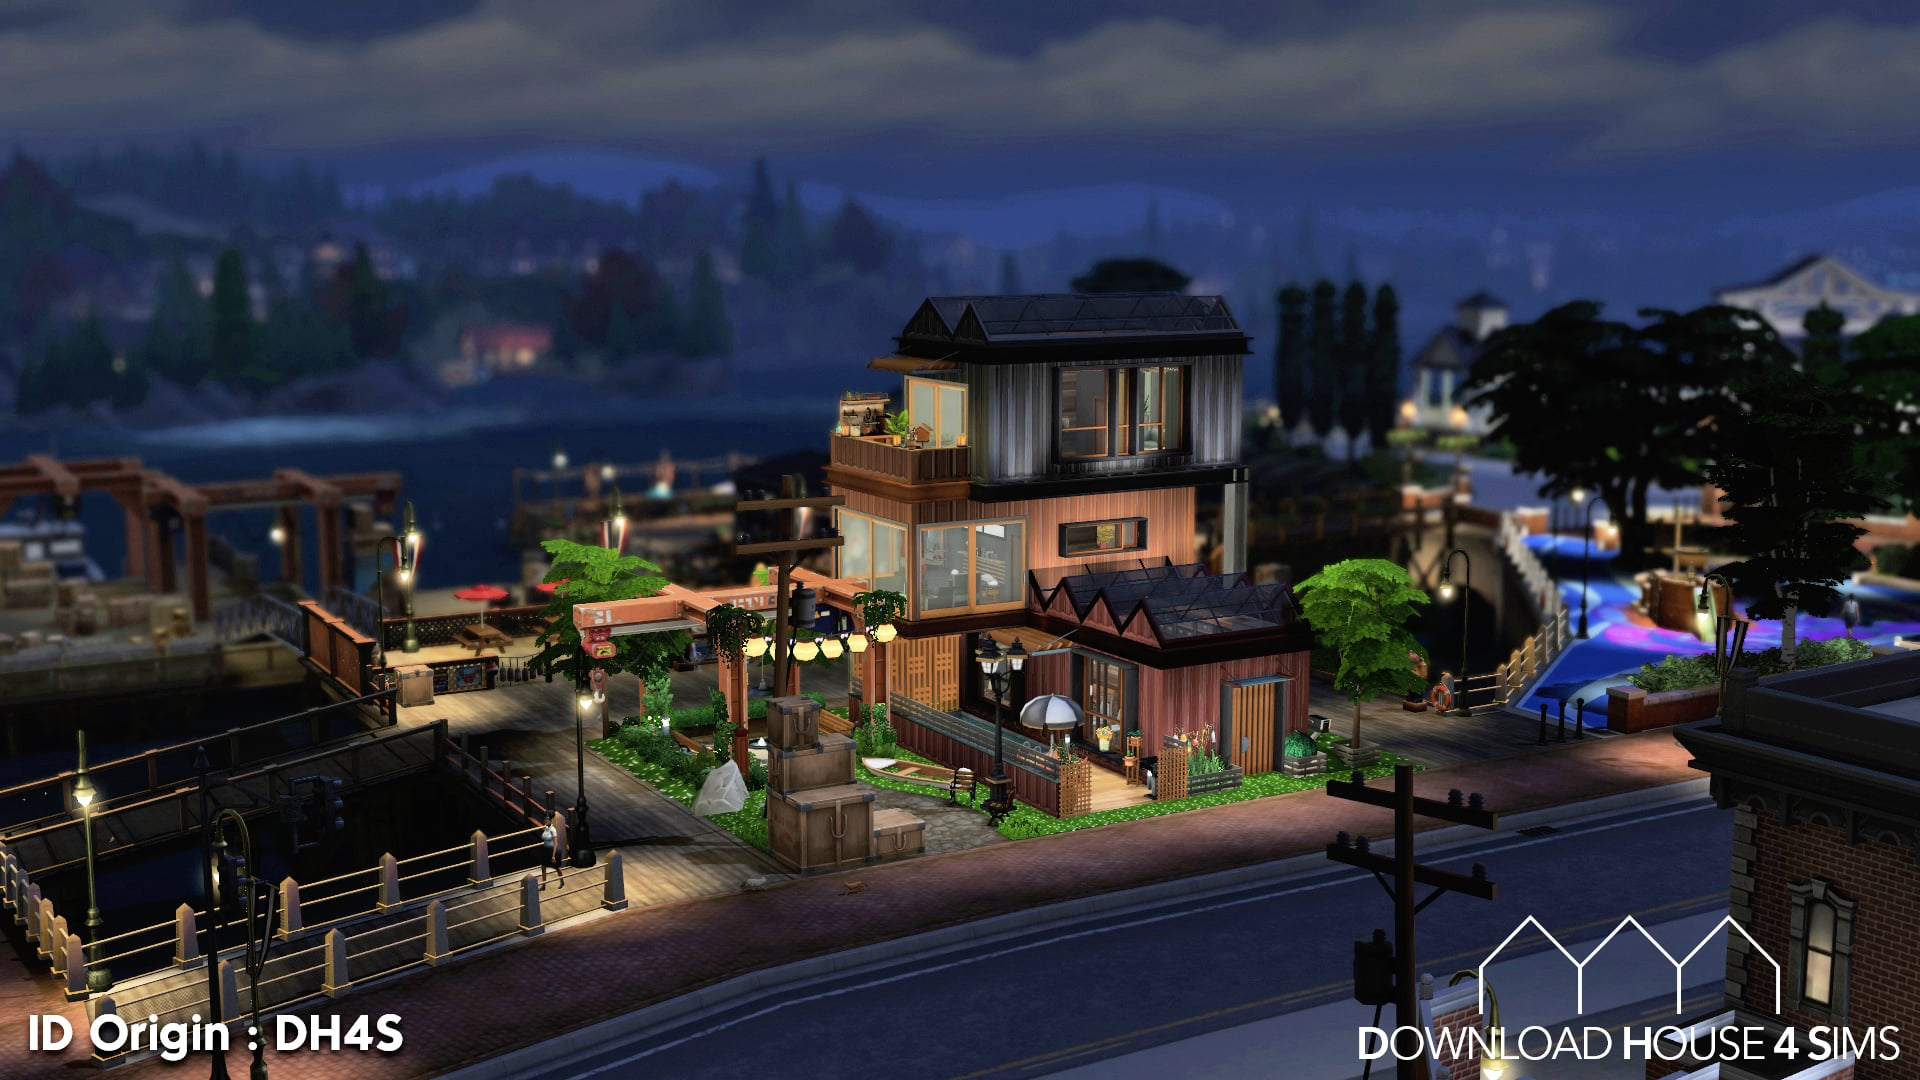 DH4S-Download-house-for-sims-dock-container-eco-house-32